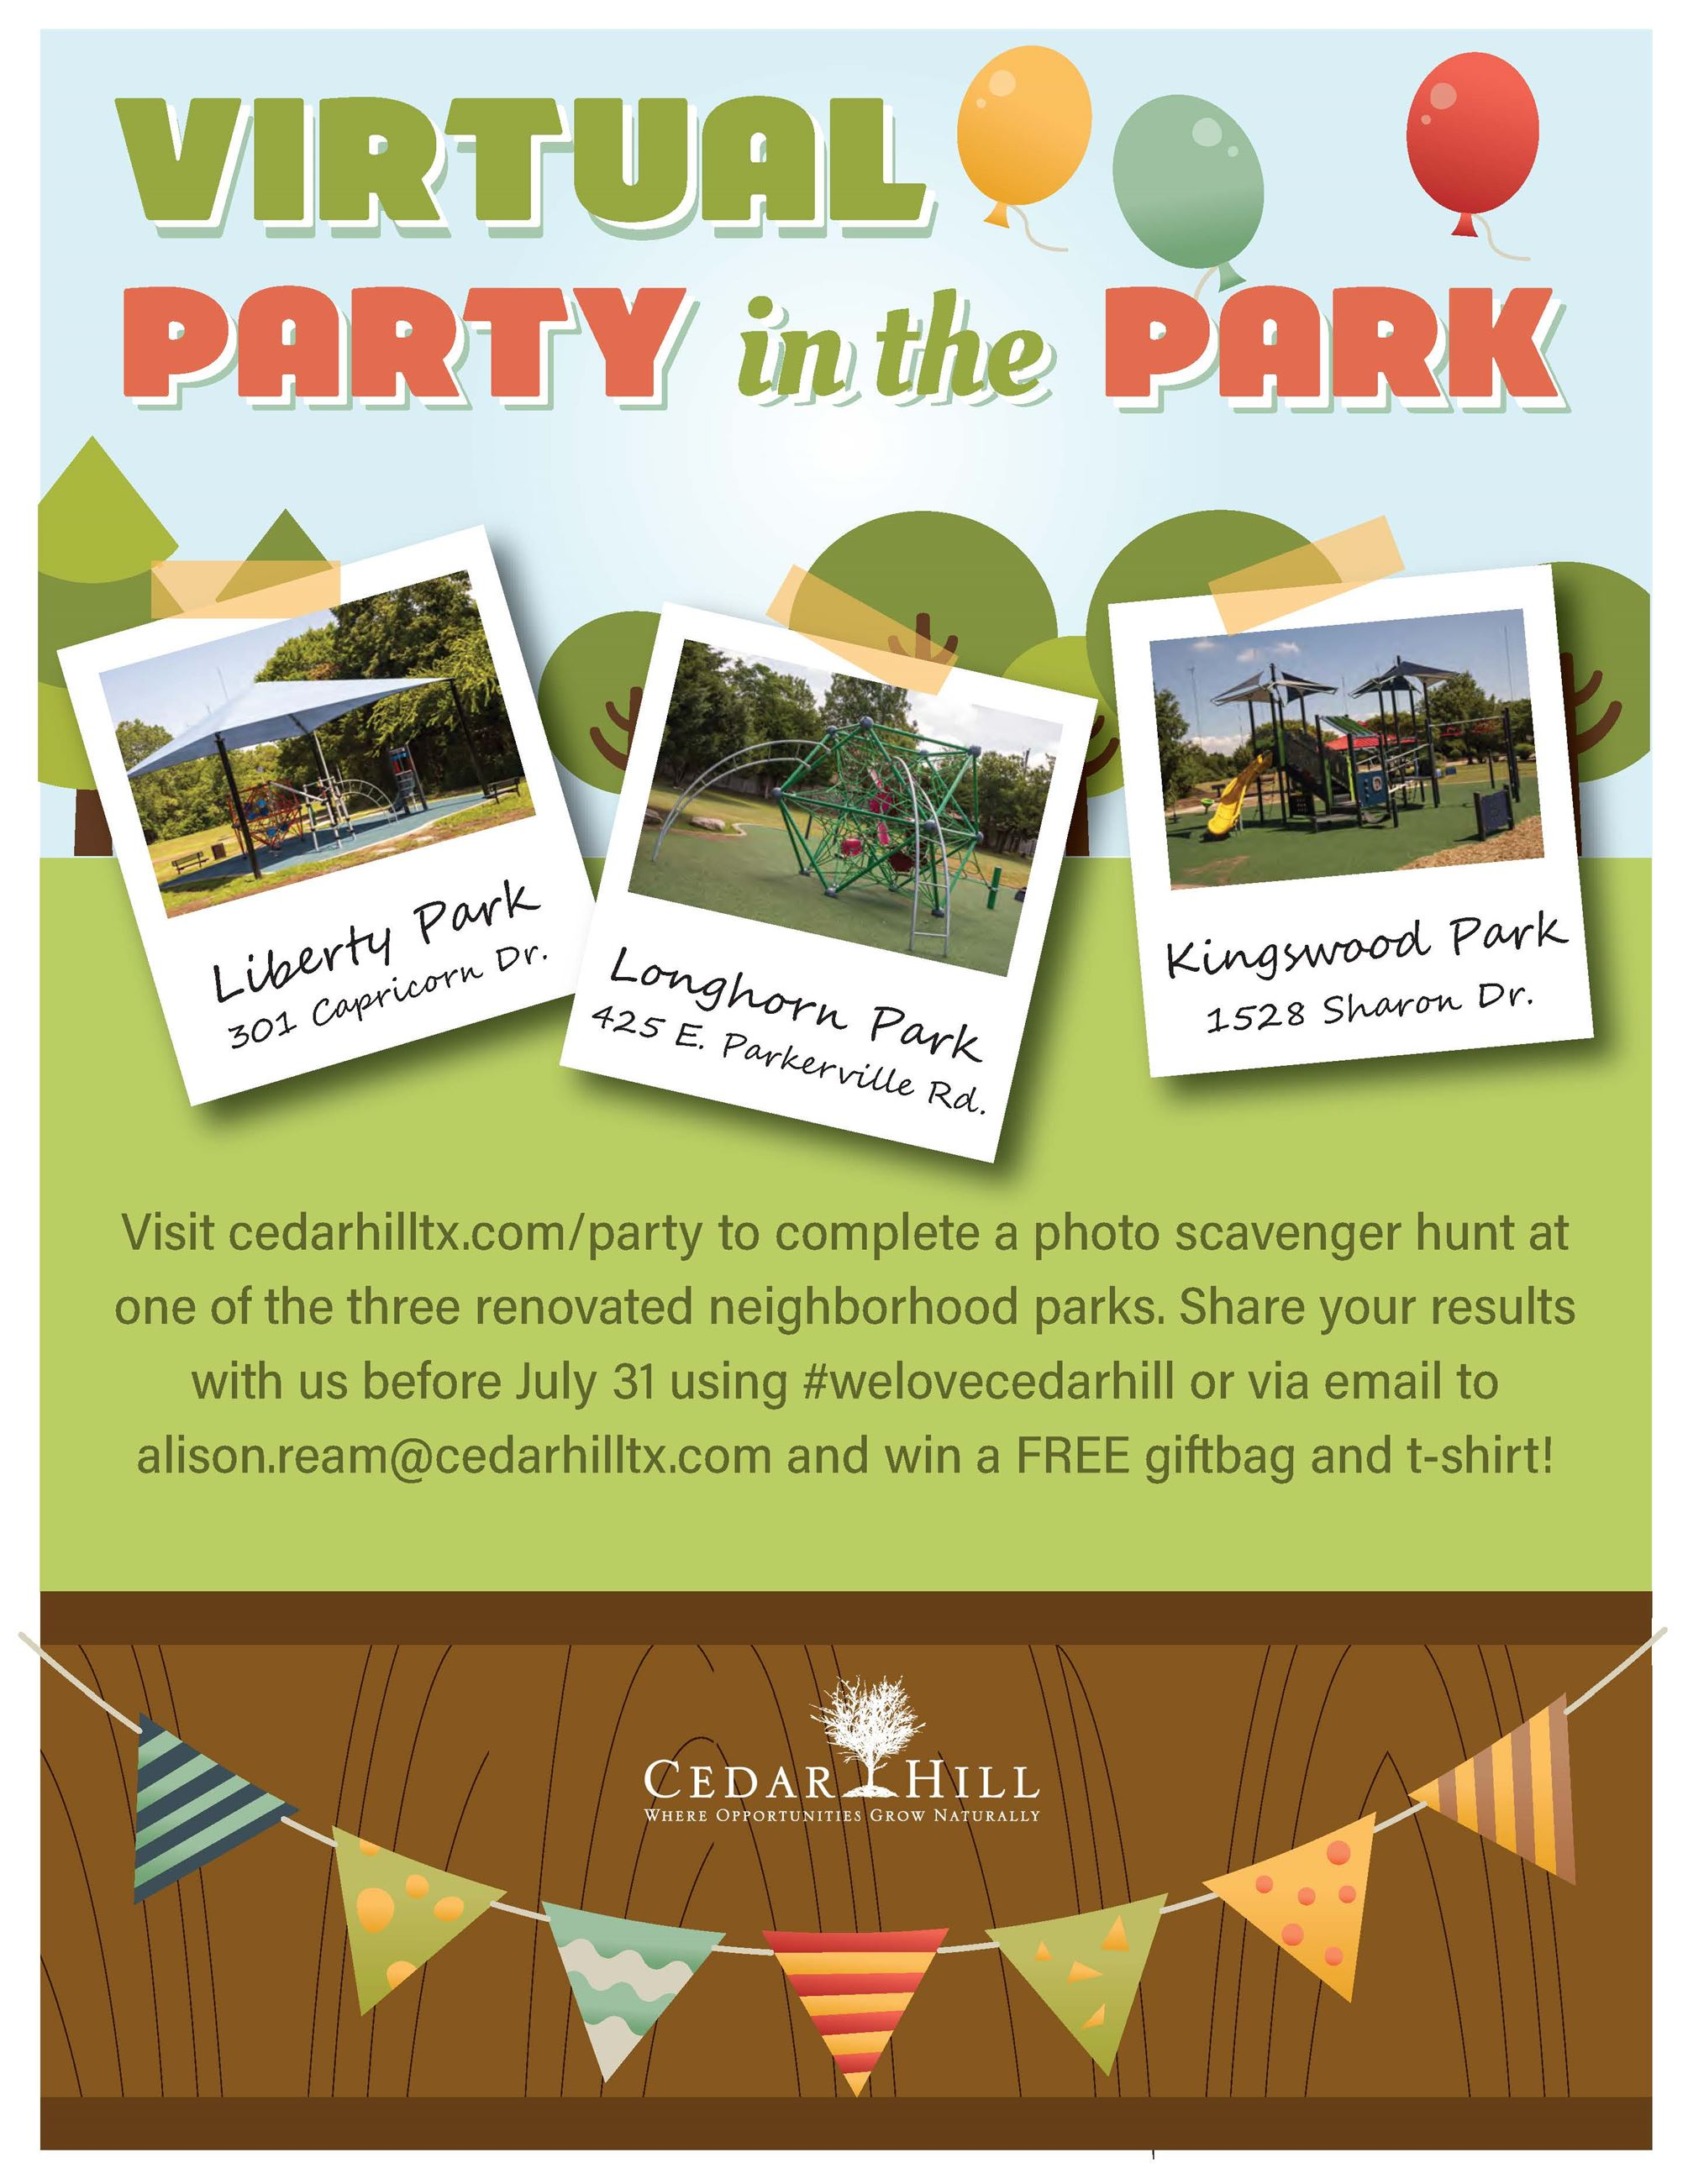 Virtual Party in the Park flyer